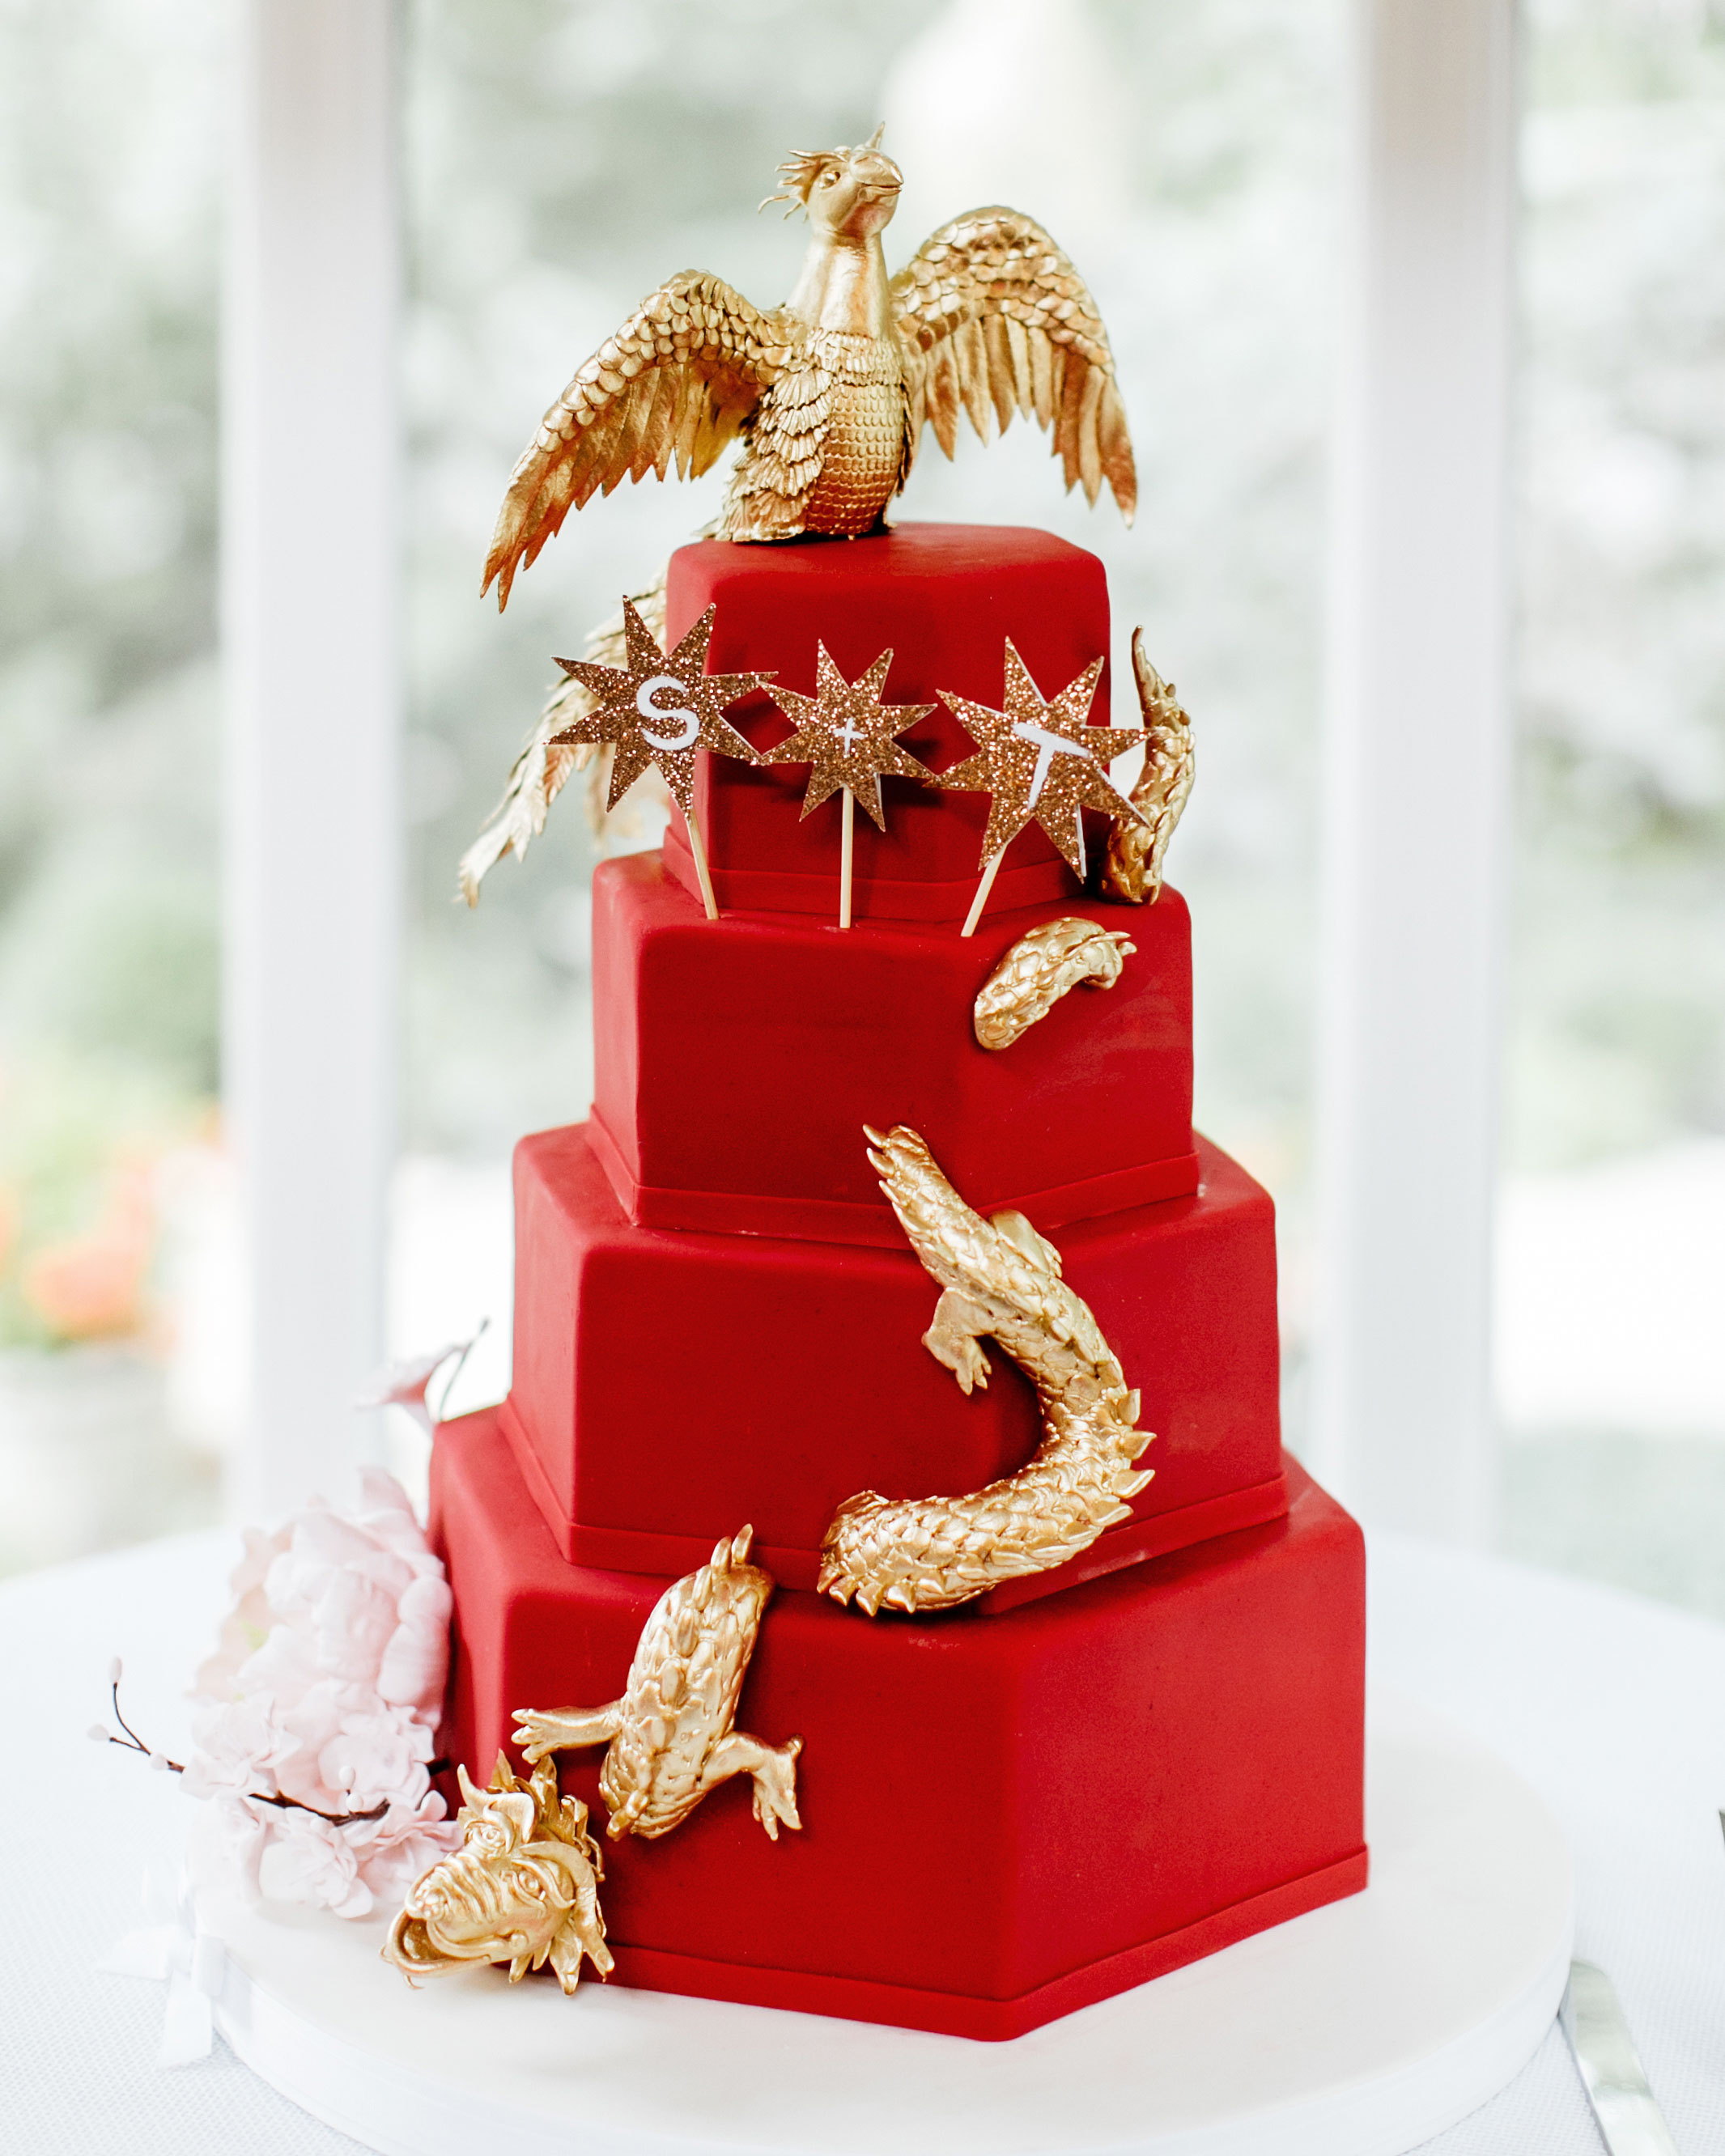 susan-tom-wedding-cake-246-s112692-0316.jpg